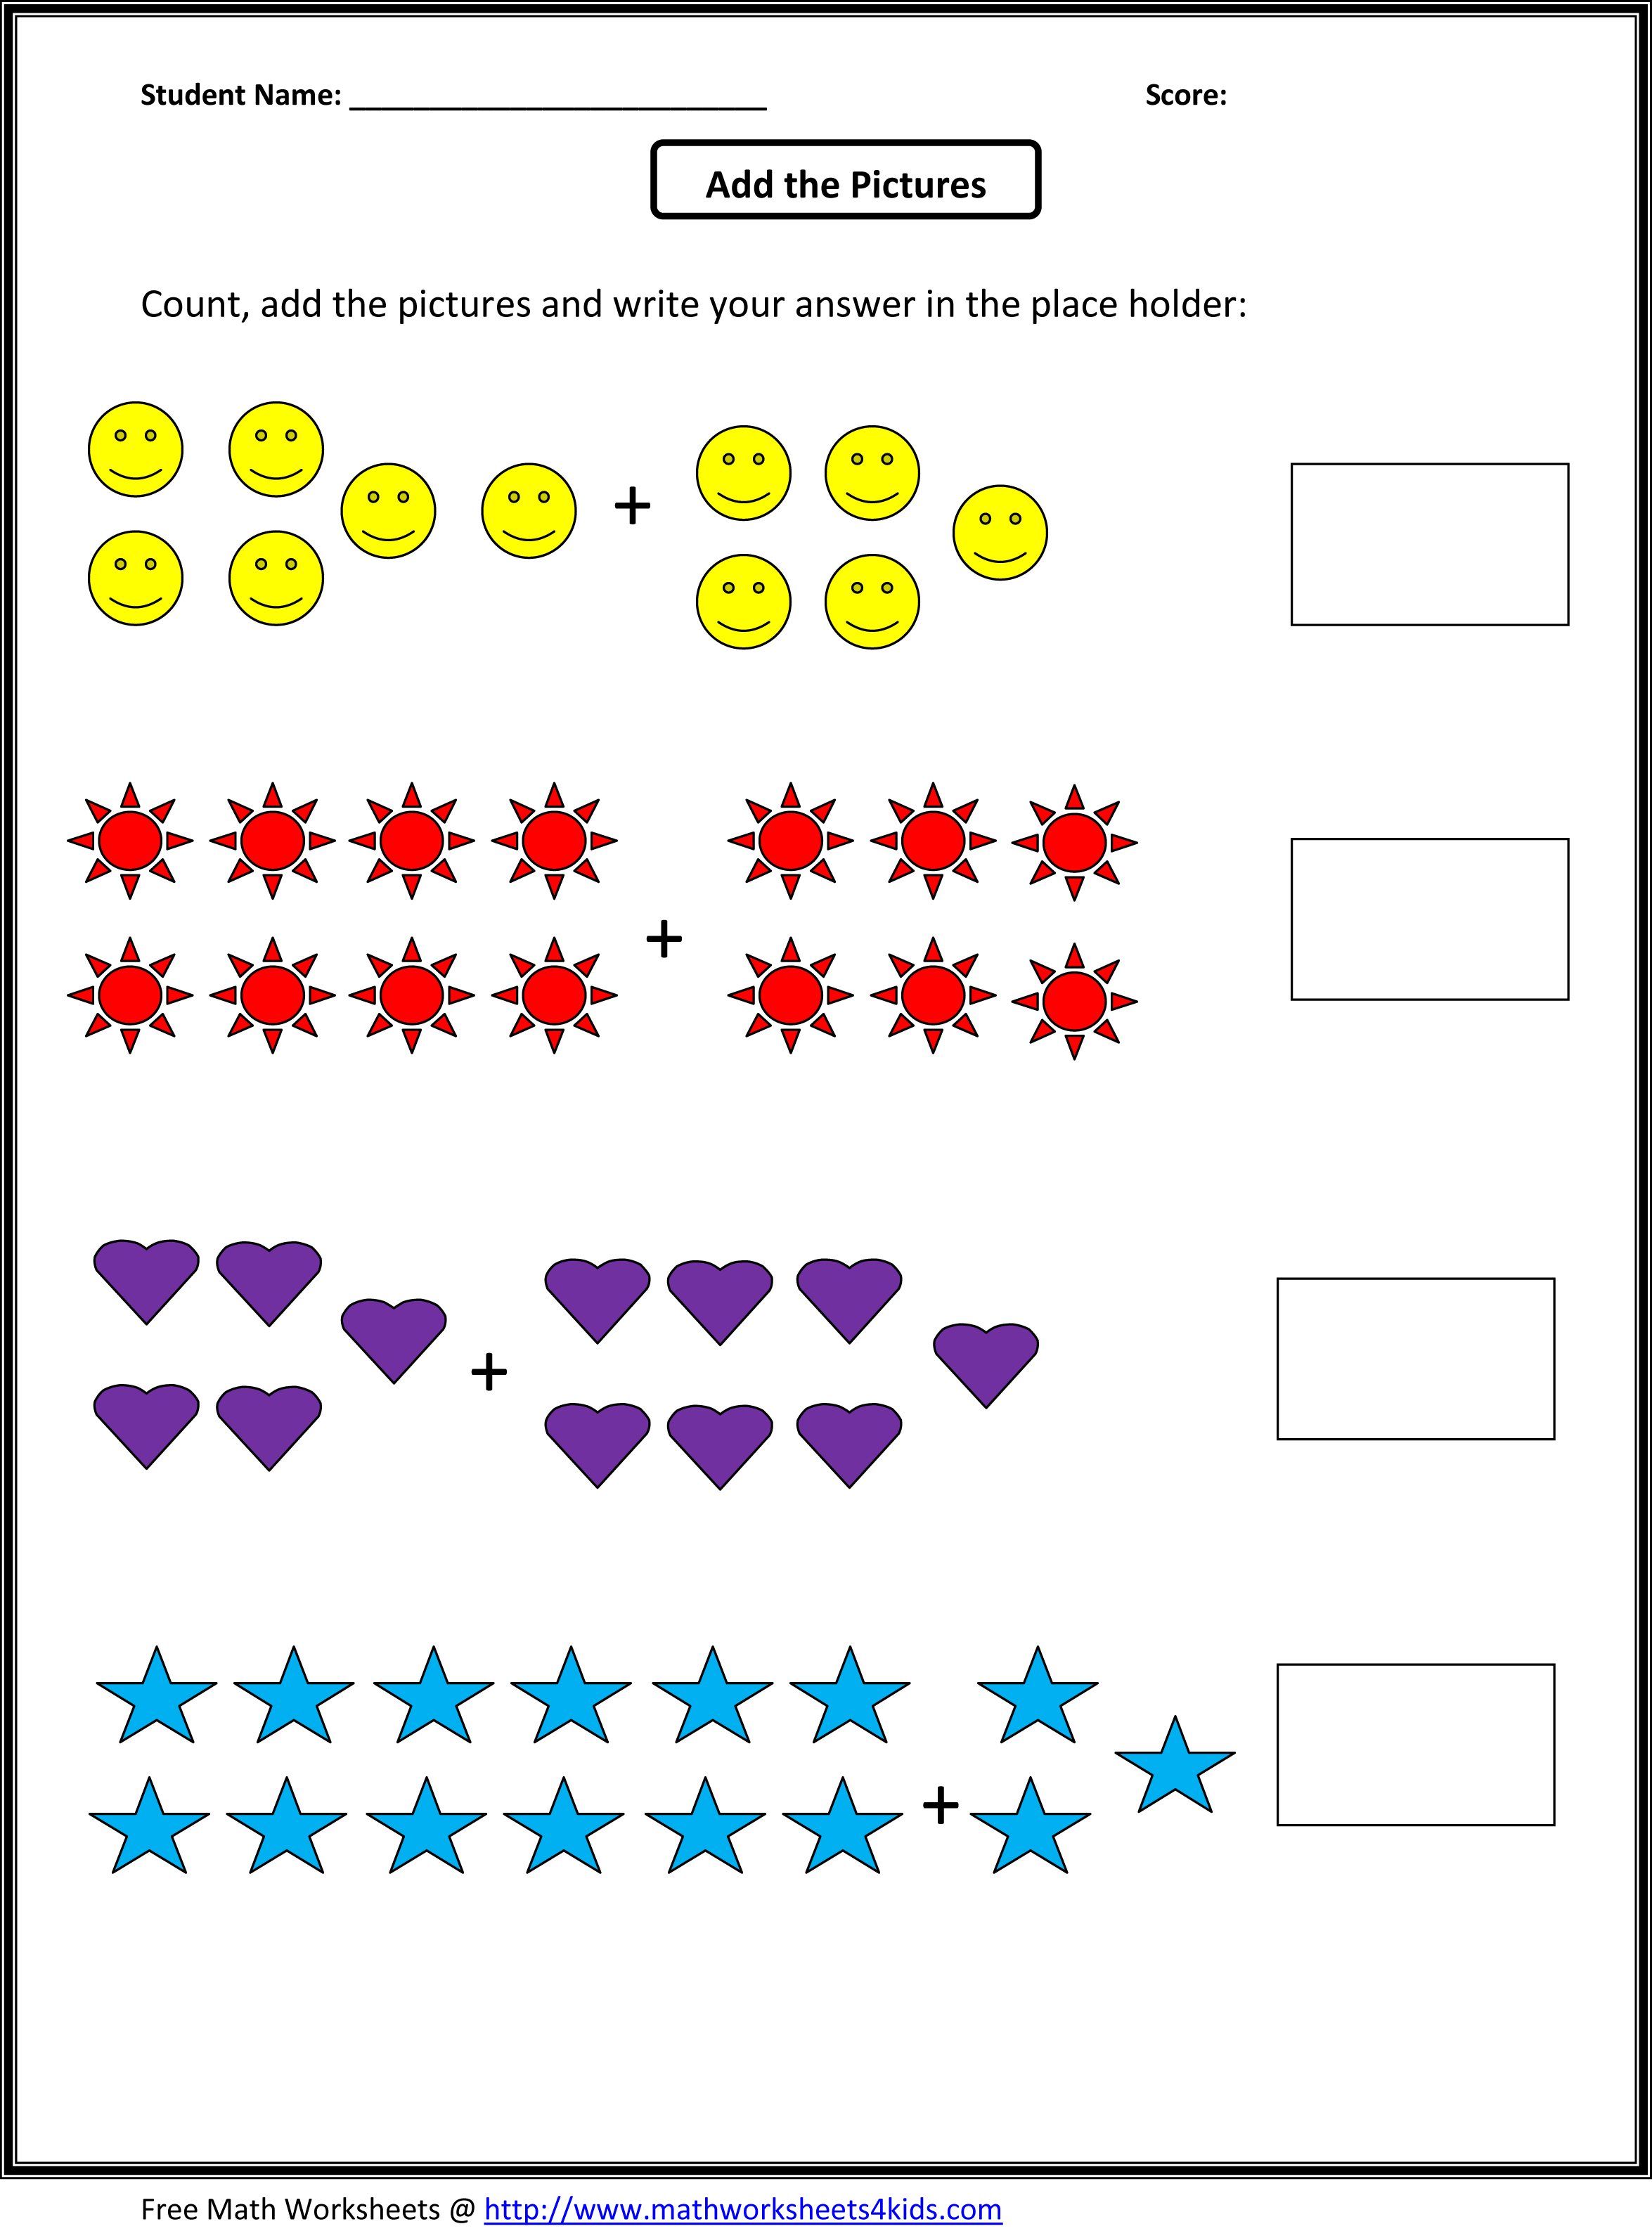 Weirdmailus  Mesmerizing Grade  Maths Worksheet  Reocurent With Luxury Math Worksheets For St Grade Free  Reocurent With Endearing Excel Worksheet Index Also Ict Worksheets For Kids In Addition Addition Pyramid Worksheets And Worksheet On Reflection As Well As Printable Preschool Writing Worksheets Additionally Past Tense Worksheets For Grade  From Reocurentcom With Weirdmailus  Luxury Grade  Maths Worksheet  Reocurent With Endearing Math Worksheets For St Grade Free  Reocurent And Mesmerizing Excel Worksheet Index Also Ict Worksheets For Kids In Addition Addition Pyramid Worksheets From Reocurentcom